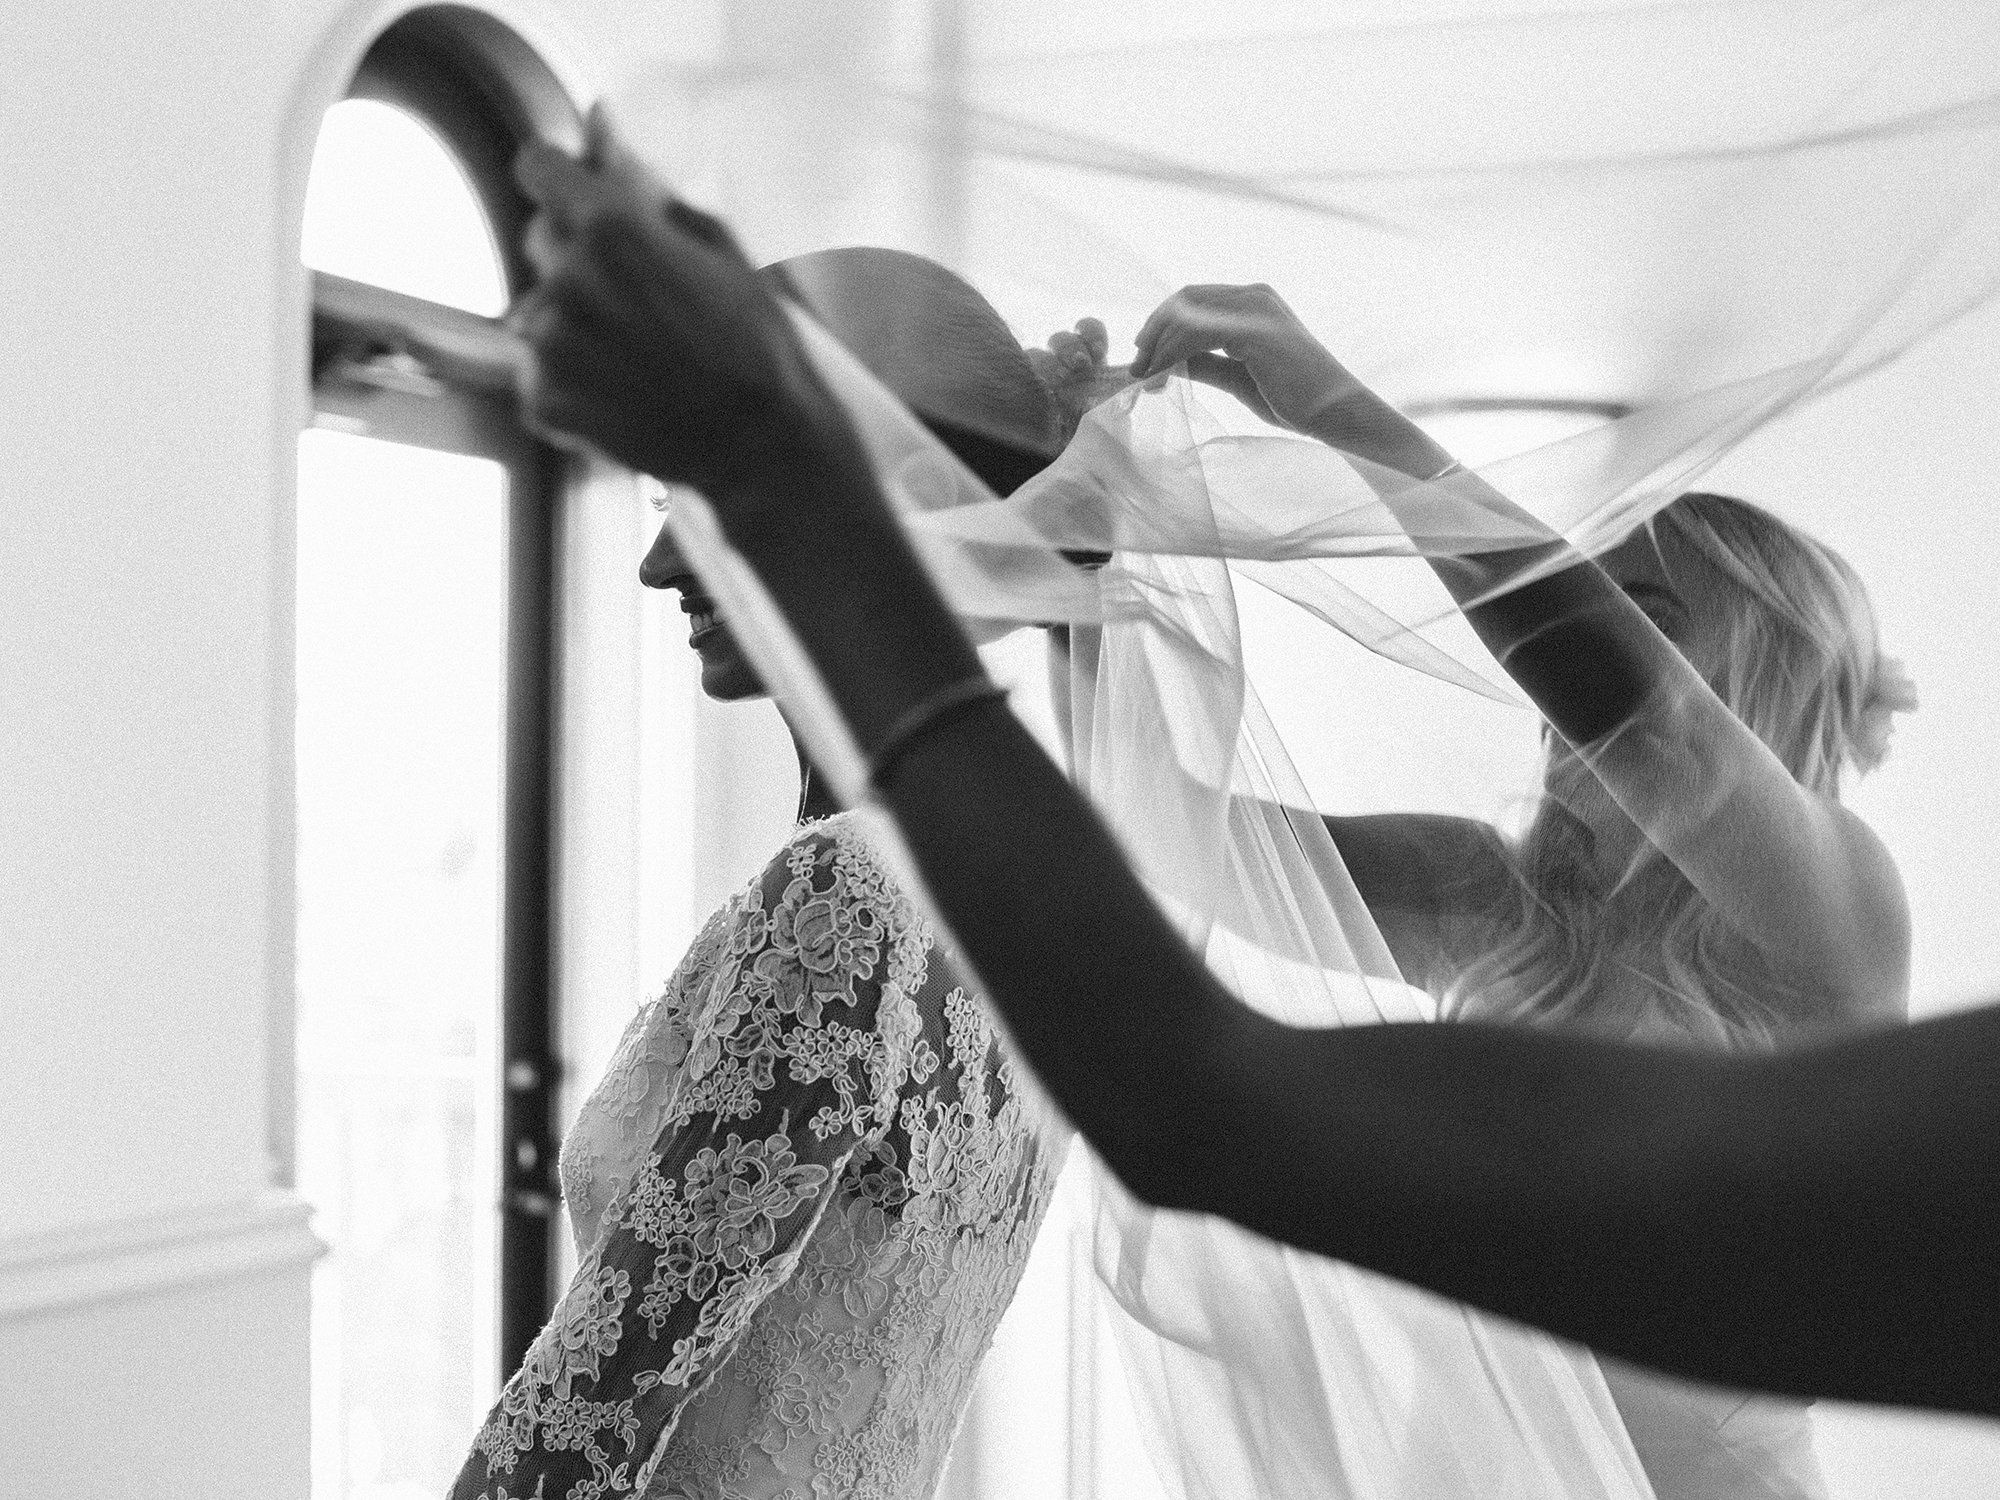 Connie Peterson And Matthew Pavlovichs Greek Wedding In Los Angeles Pictured Here Is The Bride Getting Ready For Her Big Day